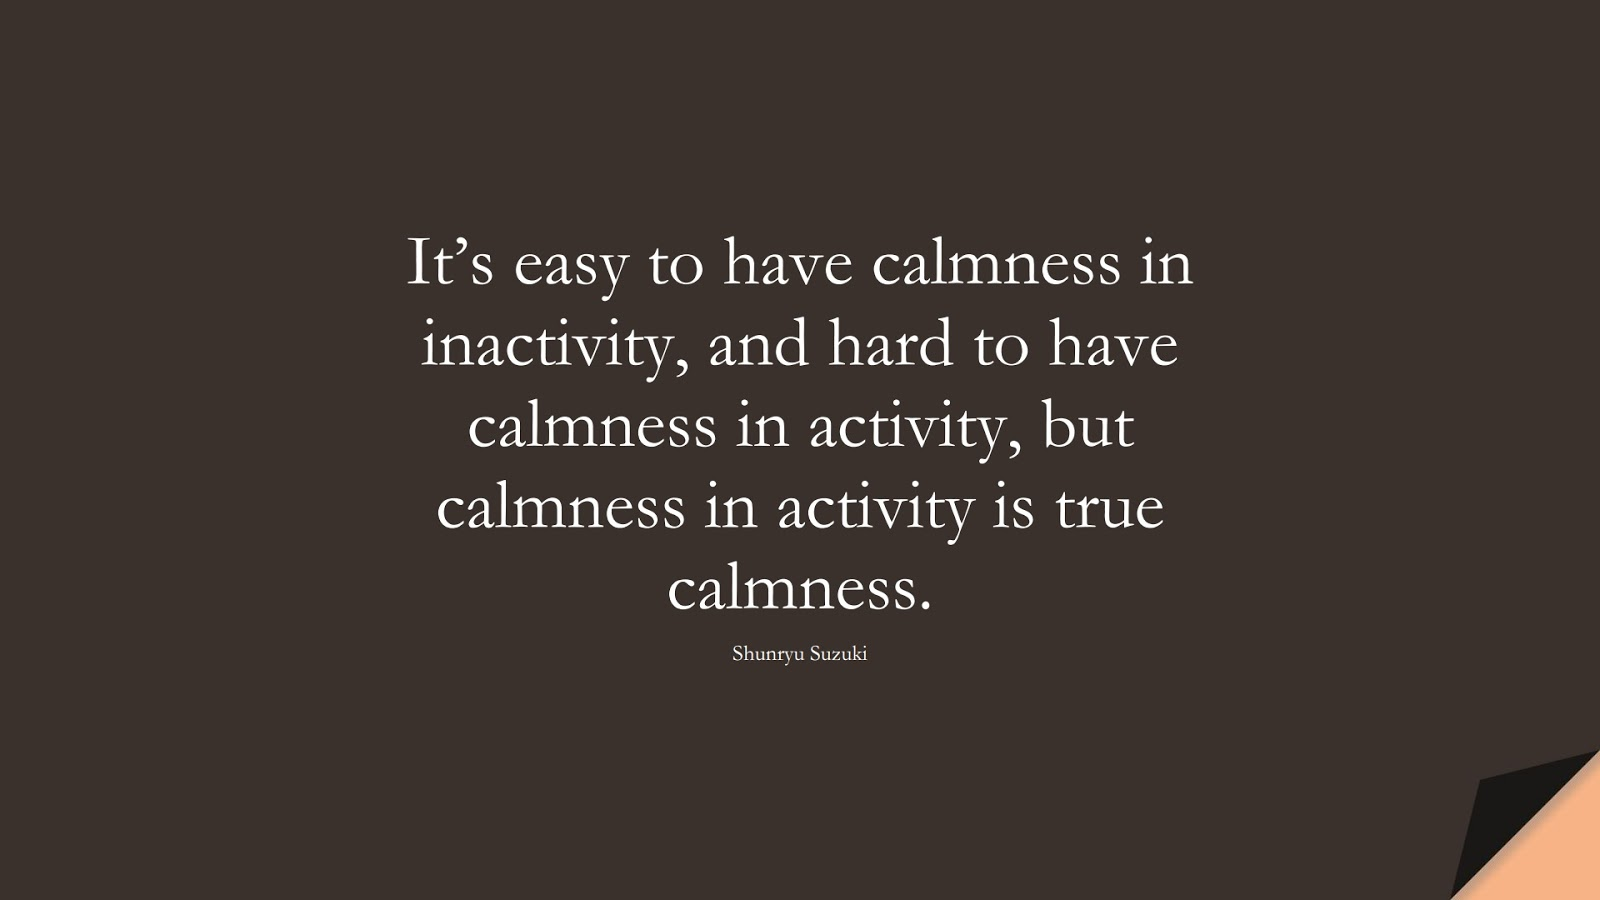 It's easy to have calmness in inactivity, and hard to have calmness in activity, but calmness in activity is true calmness. (Shunryu Suzuki);  #CalmQuotes